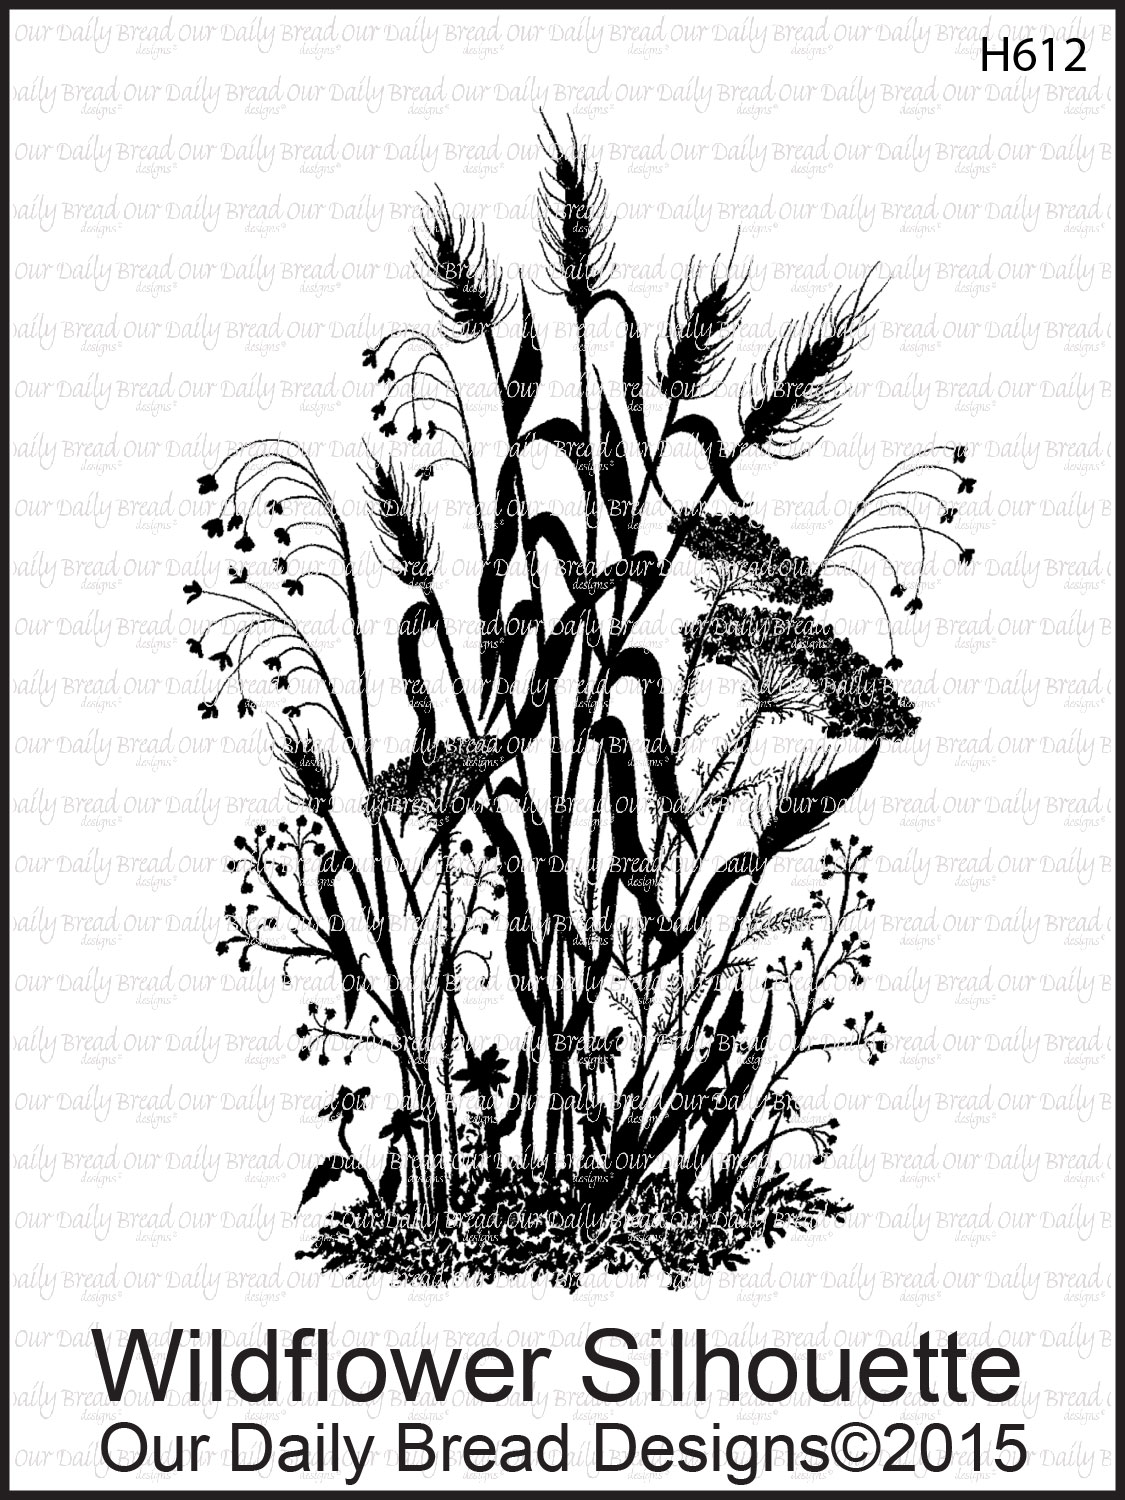 Stamps - Our Daily Bread Designs Wildflower Silhouette